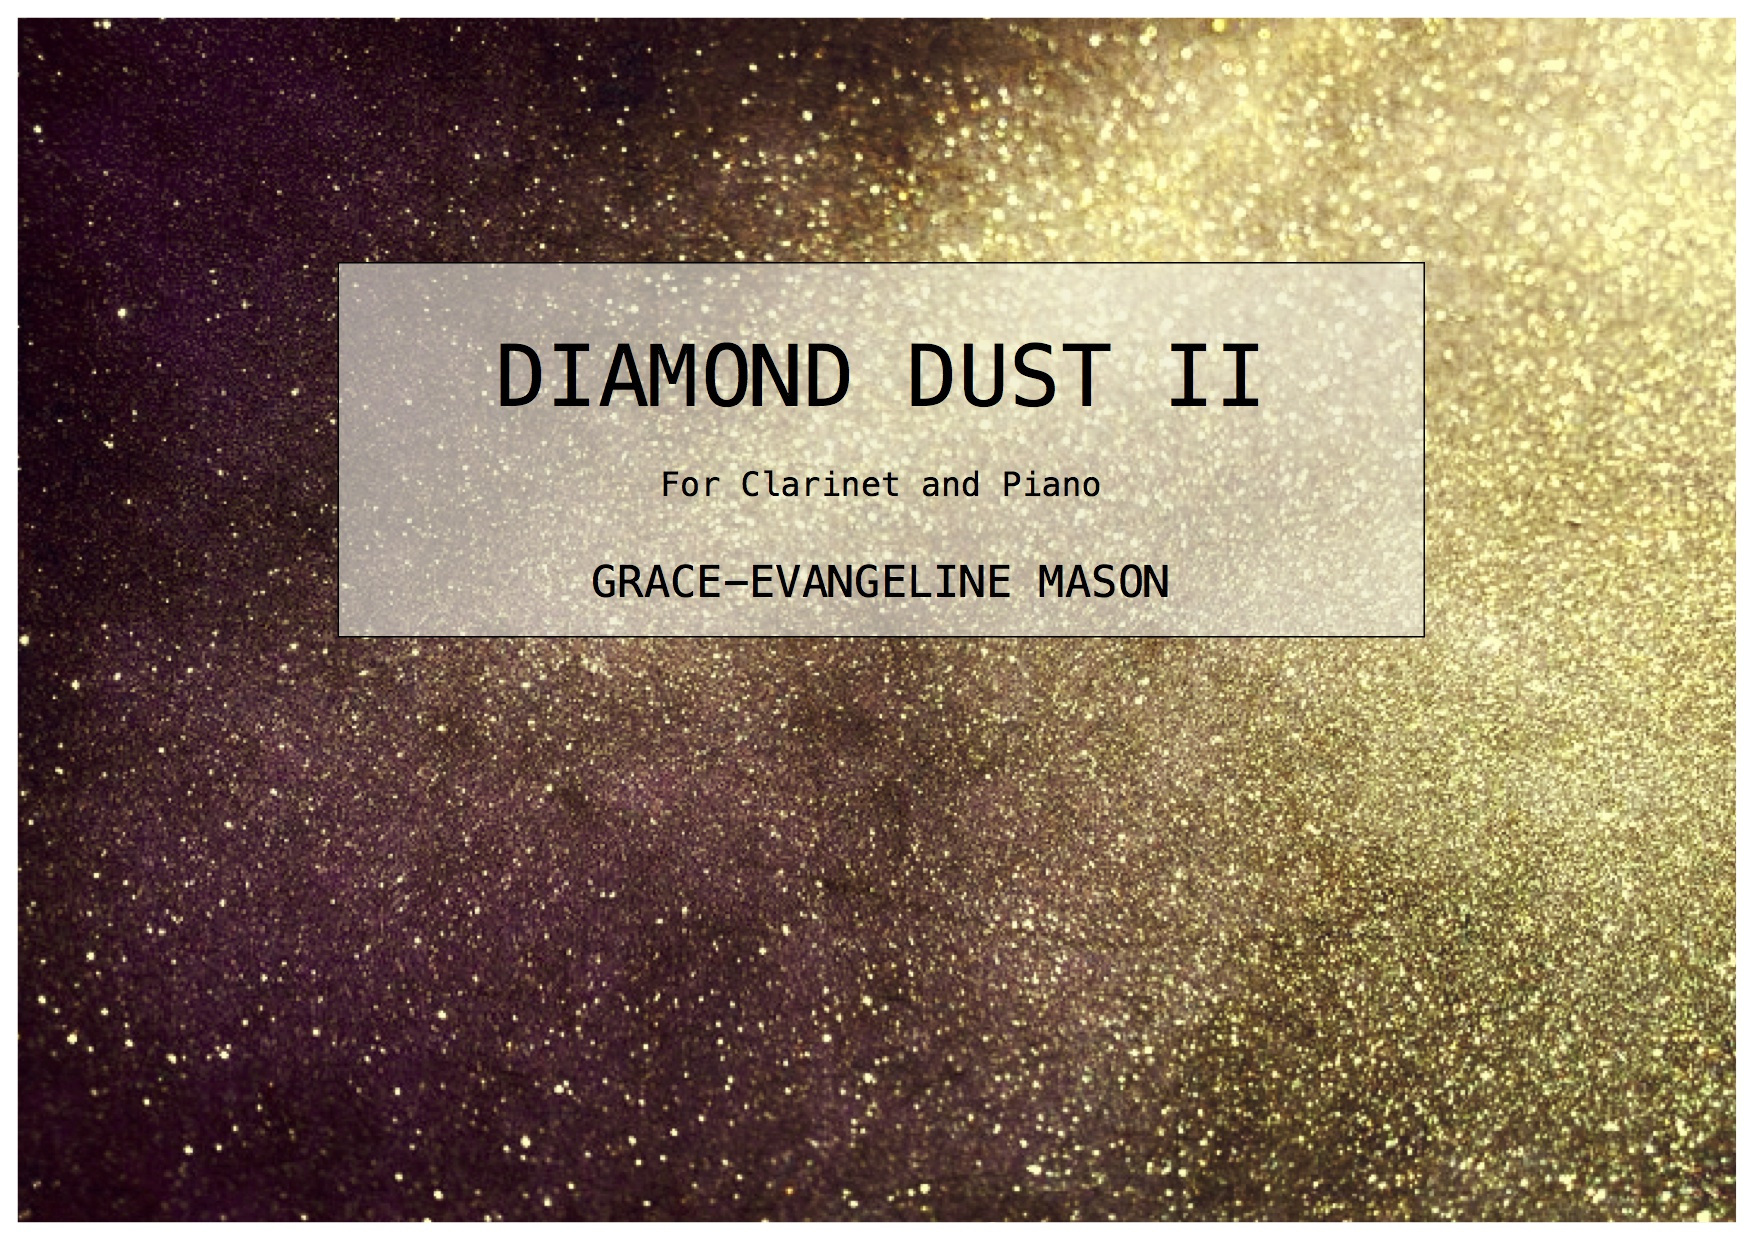 Diamond Dust II (2015) - For clarinet in Bb and prepared piano.Duration: 6'First performed live on BBC Radio 3 Young Artists Day Programme from the RNCM (04/05/15)'Diamond Dust is a type of cloud that consists of tiny ice crystals, which creates a meteorological phenomenon commonly found in the Antarctica and the Arctic. A visual display of optical marvels resembling falling glitter are present due to the diamond dust crystal's well- defined hexagonal shapes and can, like a prism, refract light in specific directions. The piece itself consists of fast cycling pitch patterns in the piano to create a delicate textural sound world to resemble the fragility of the drifting ice crystals. There is a focus on resonance, as the span of ringing notes evolves throughout until it is eventually created by a single consonant chord. A dampened figure emerges out of this resonant texture each time until at the end it is the only entity remaining. The clarinet seeks to create an underlying presence throughout the piece acting as an aid to the piano, however it occasionally breaks free and they unite to create an ethereal sound landscape.' ©G.E.M.2015©Cover Image: 'Diamond Dust' by Grace-Evangeline Mason 2015